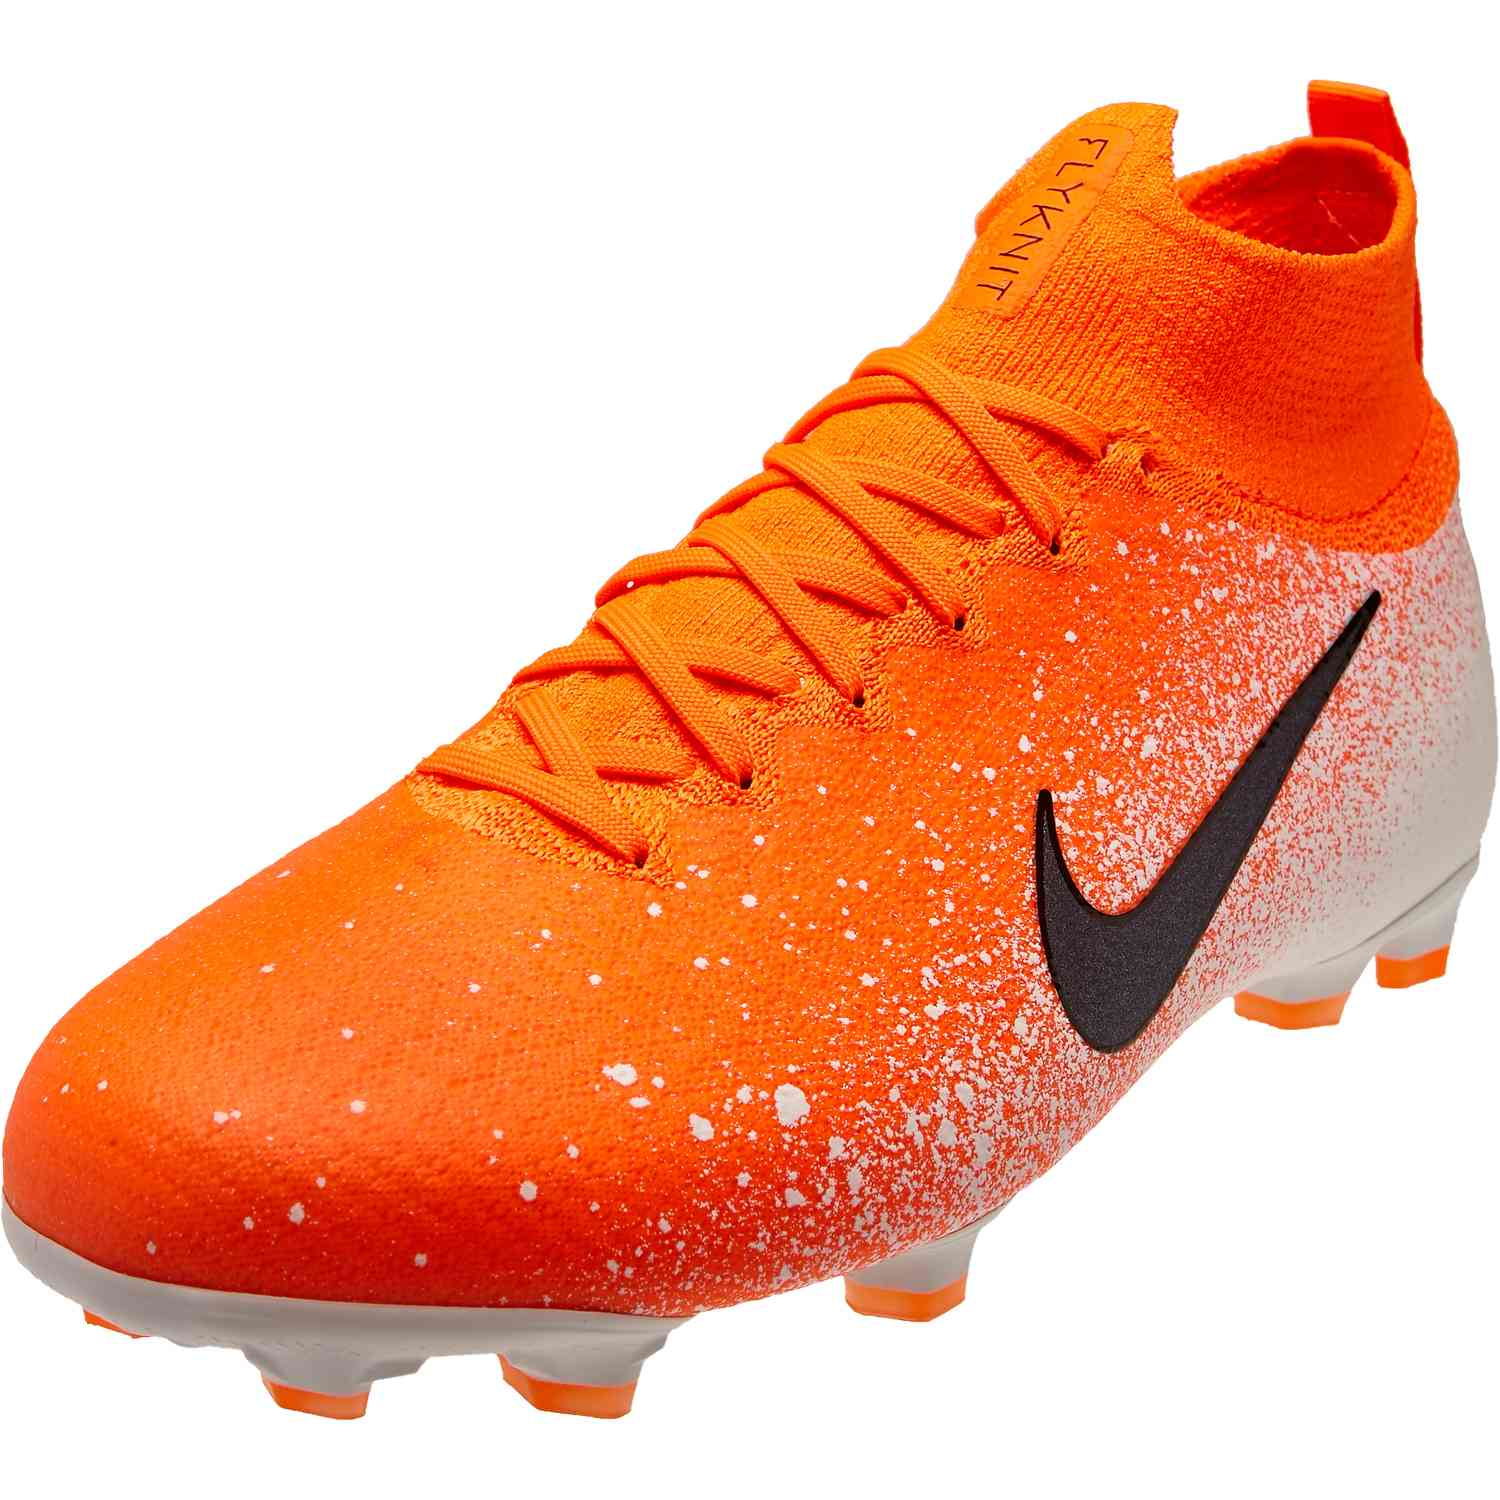 12e89aa66 Kids Nike Mercurial Superfly 6 Elite FG - Euphoria Pack - SoccerPro